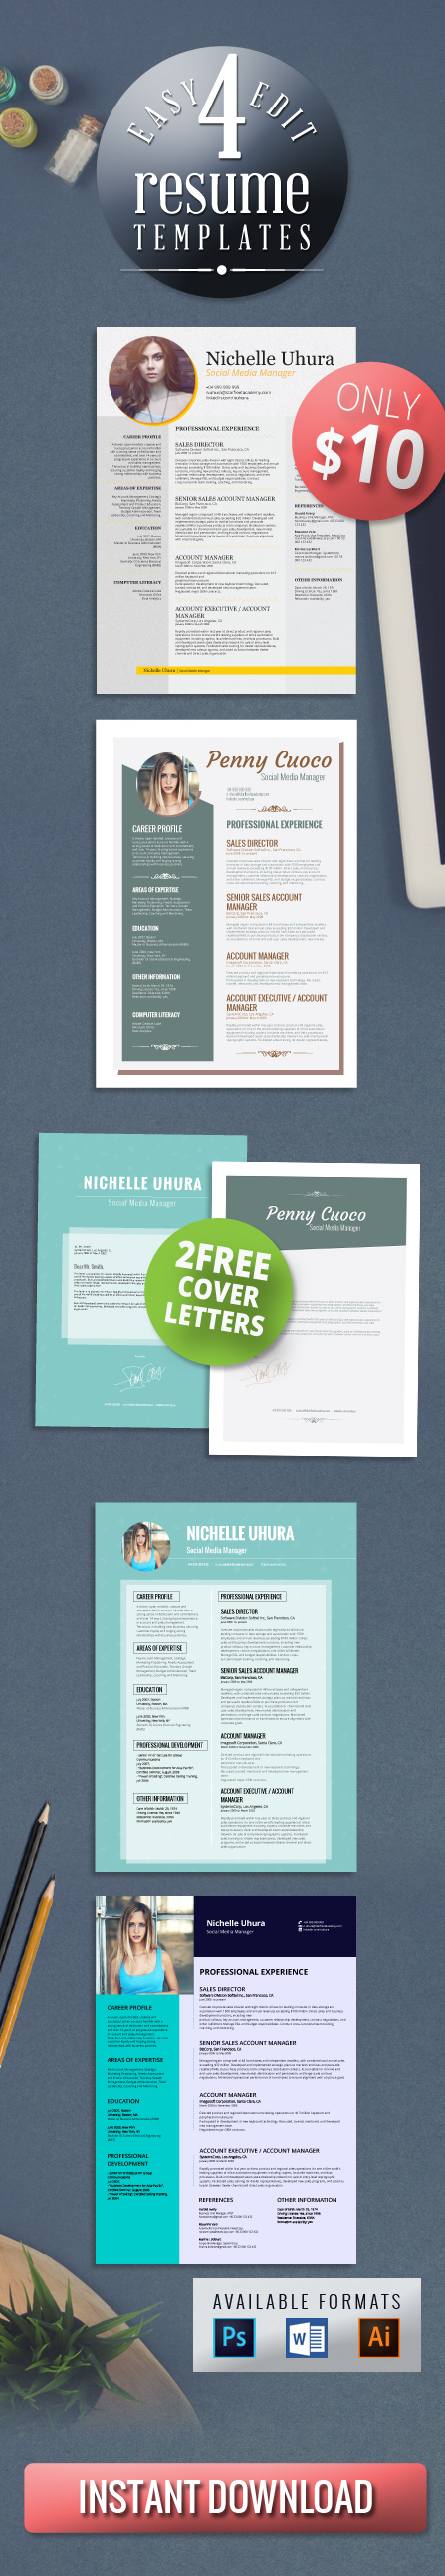 4 resume templates bundle   2 free cover letter templates